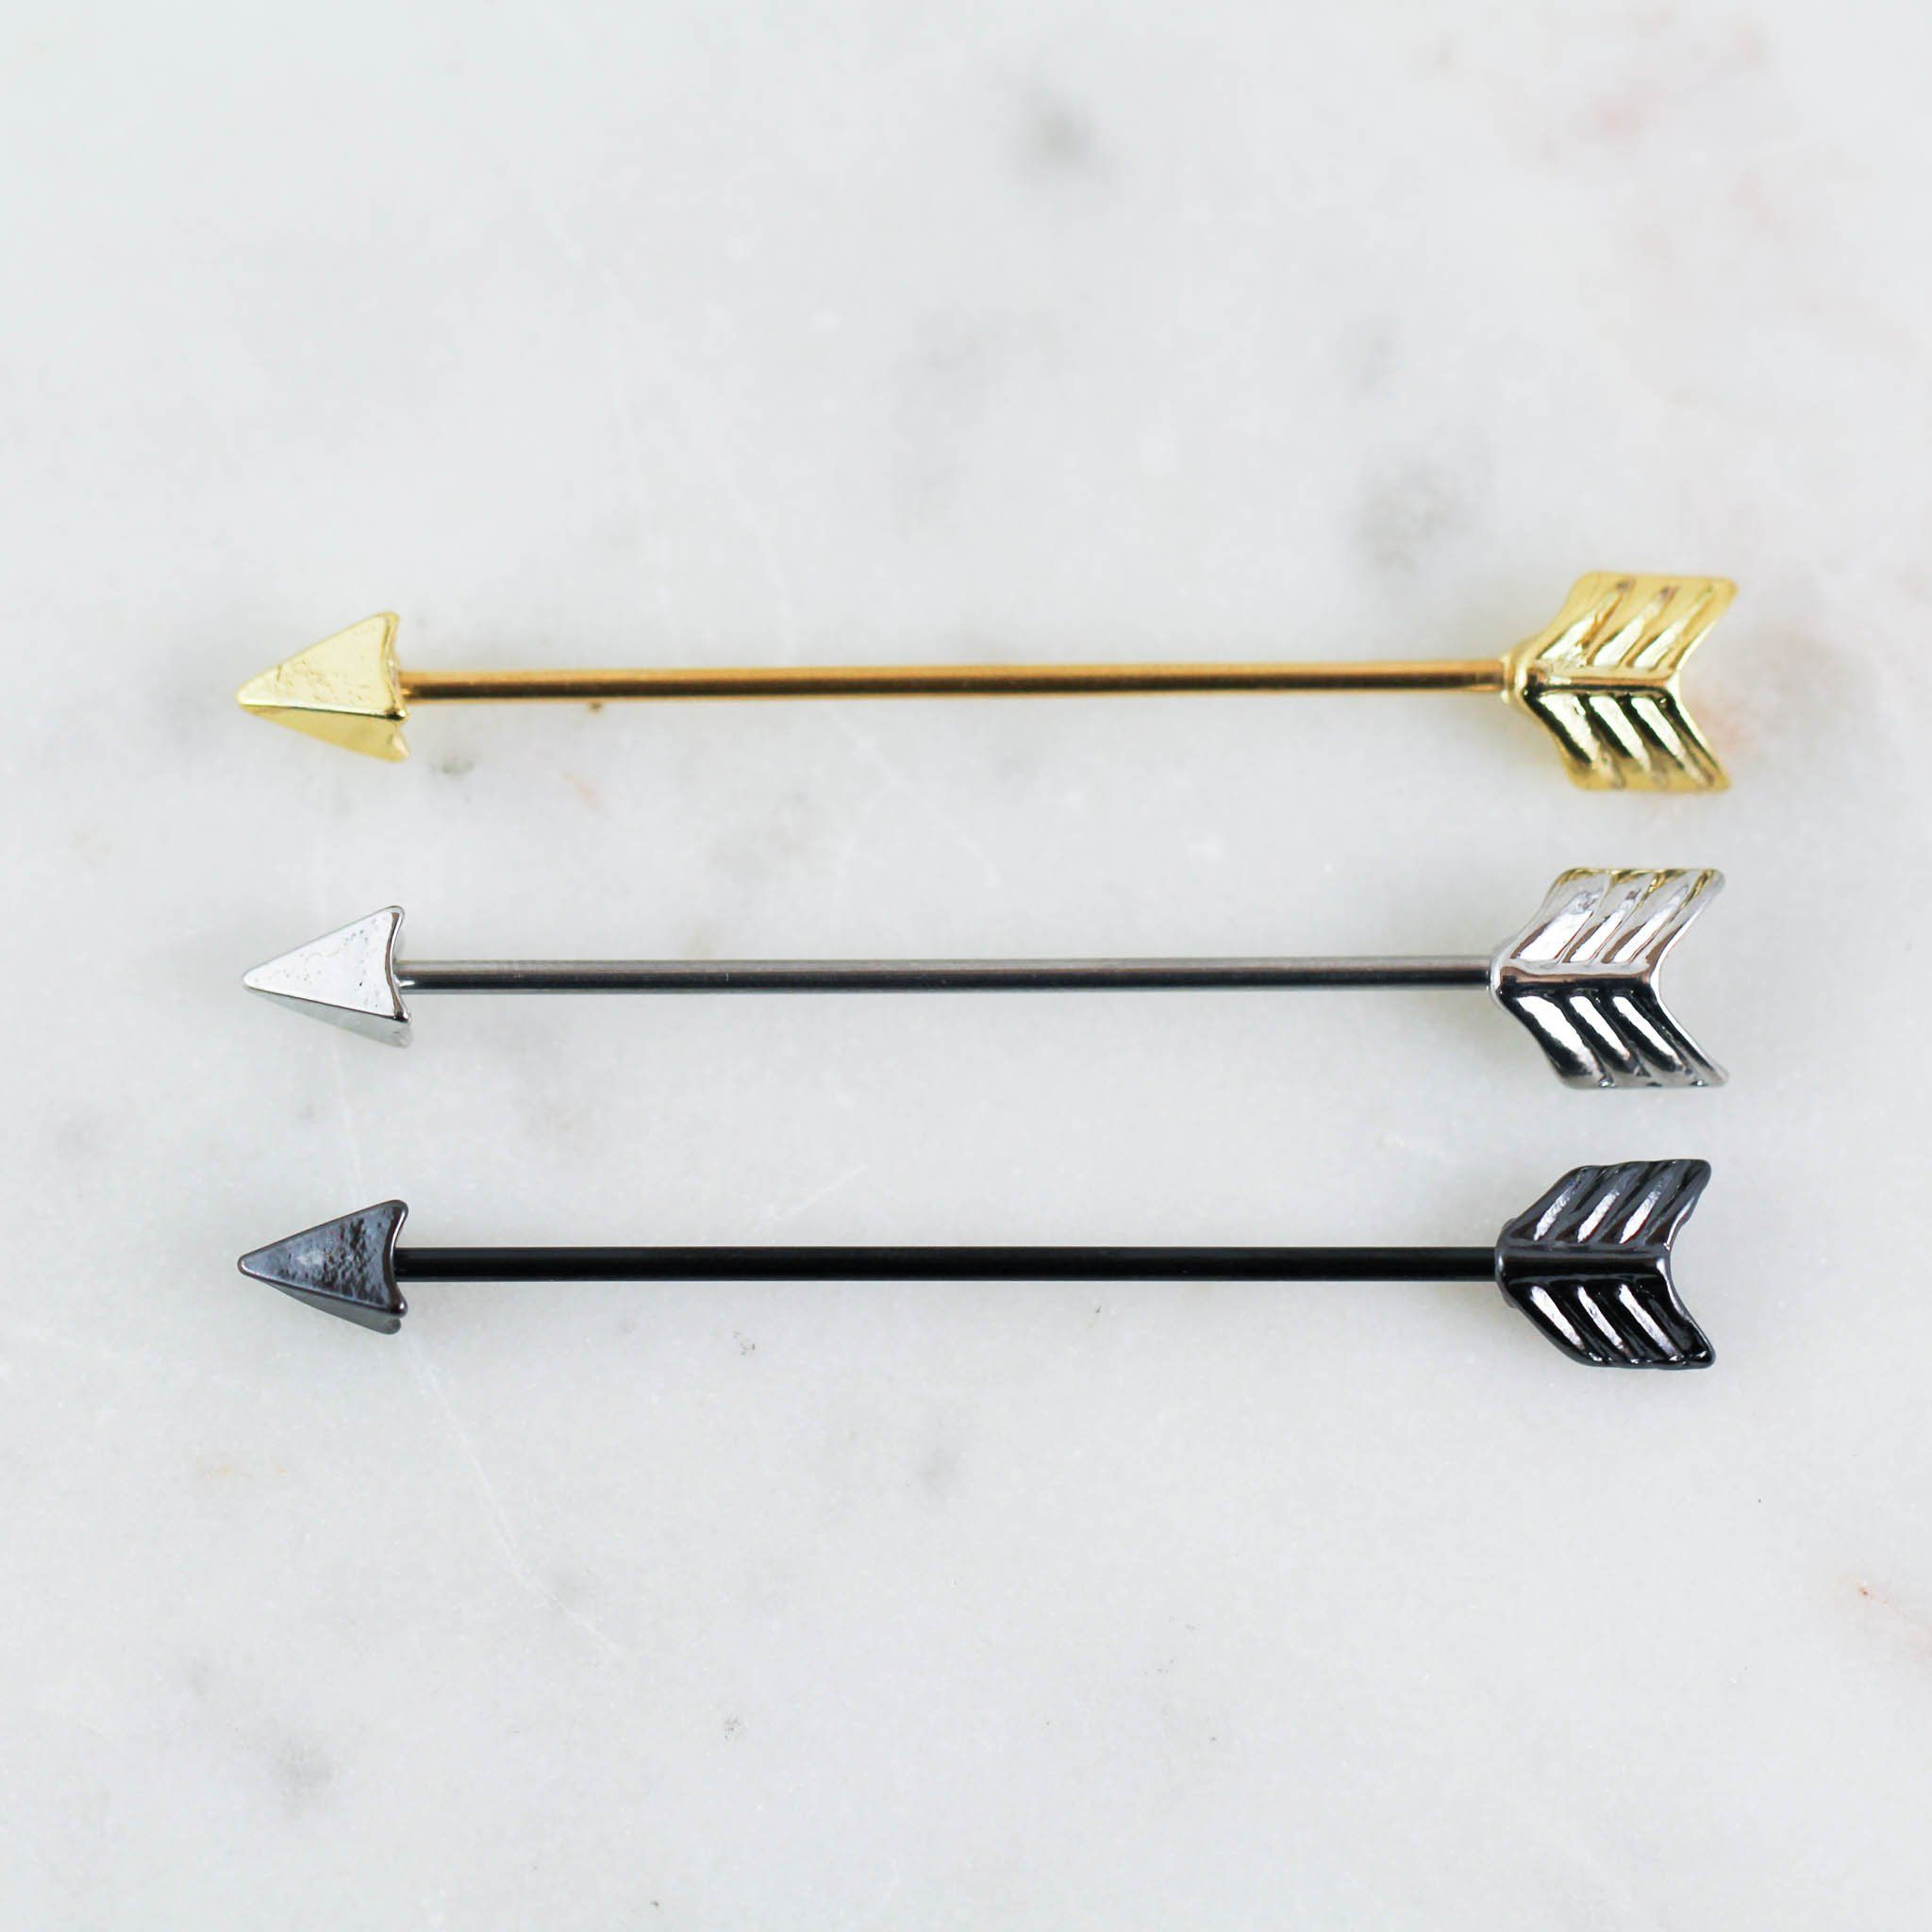 The Arrow Industrial is a classic pick for your industrial piercing! It is sold by piece and is 316L surgical steel made with ip plating at 16 gauge (1.2mm) and 1 1/2